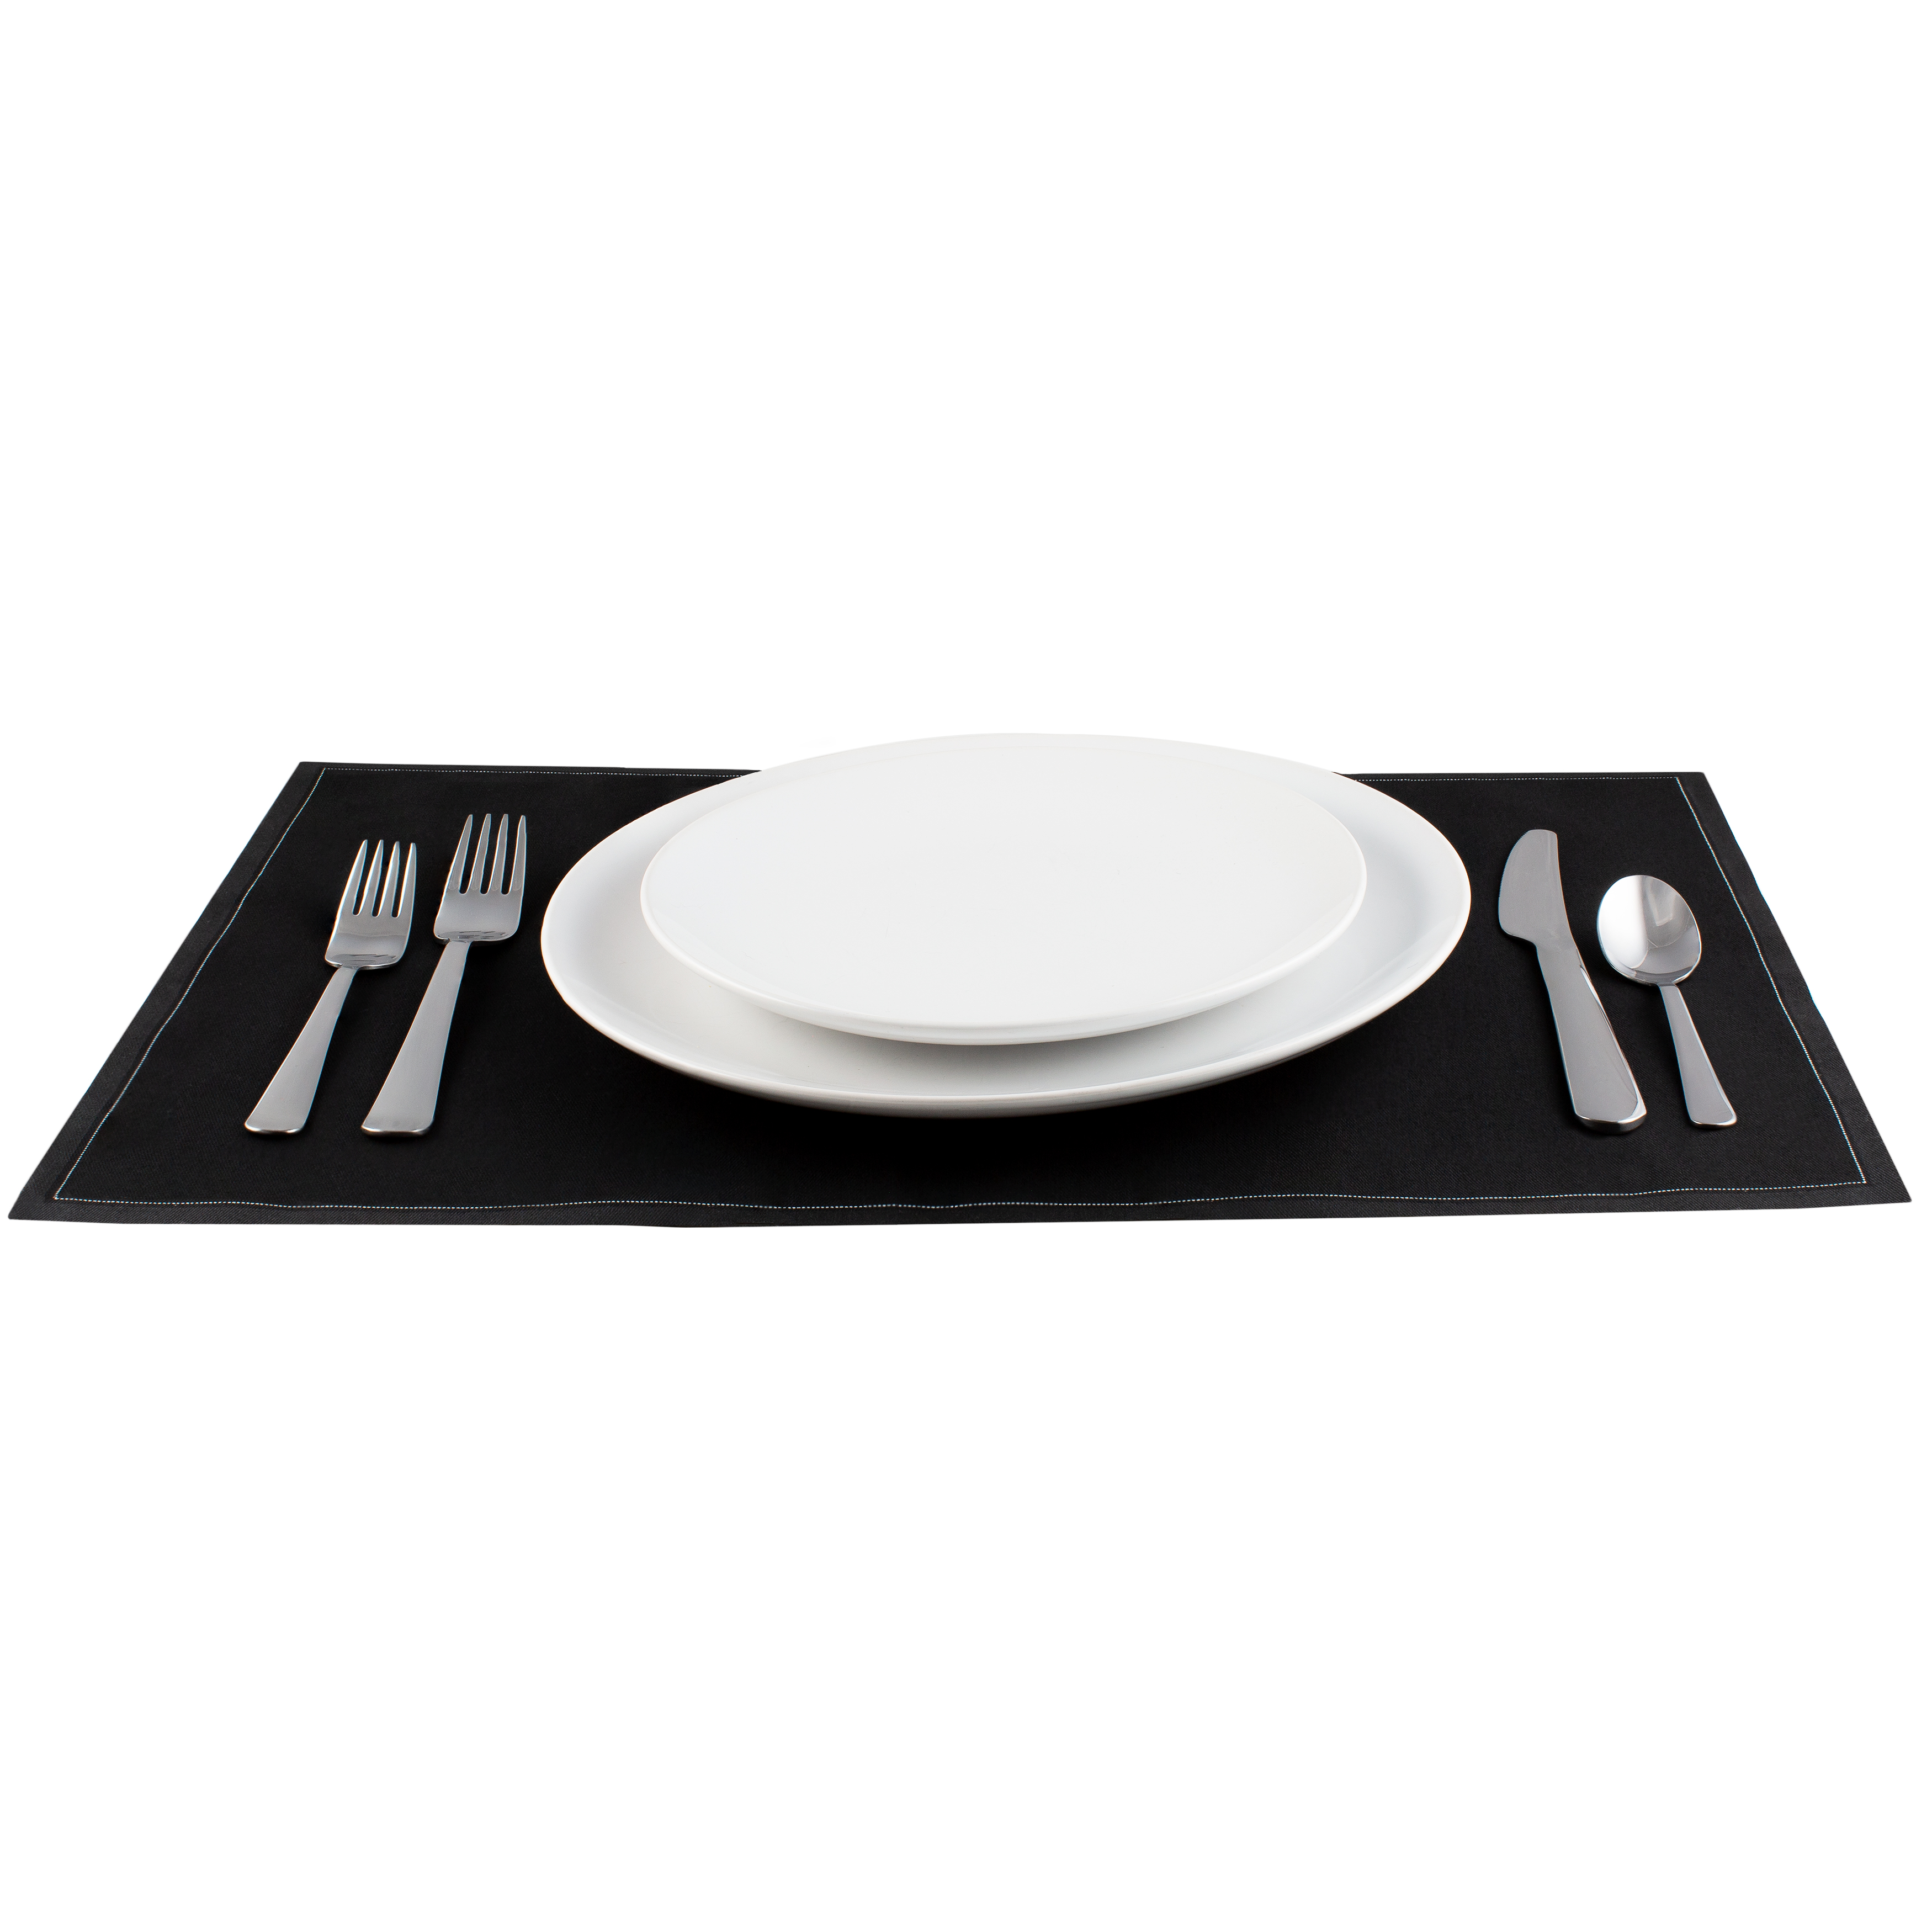 "Black Cotton Placemat (200 GSM) - 18.9"" x 12.6"" - 250 Units"